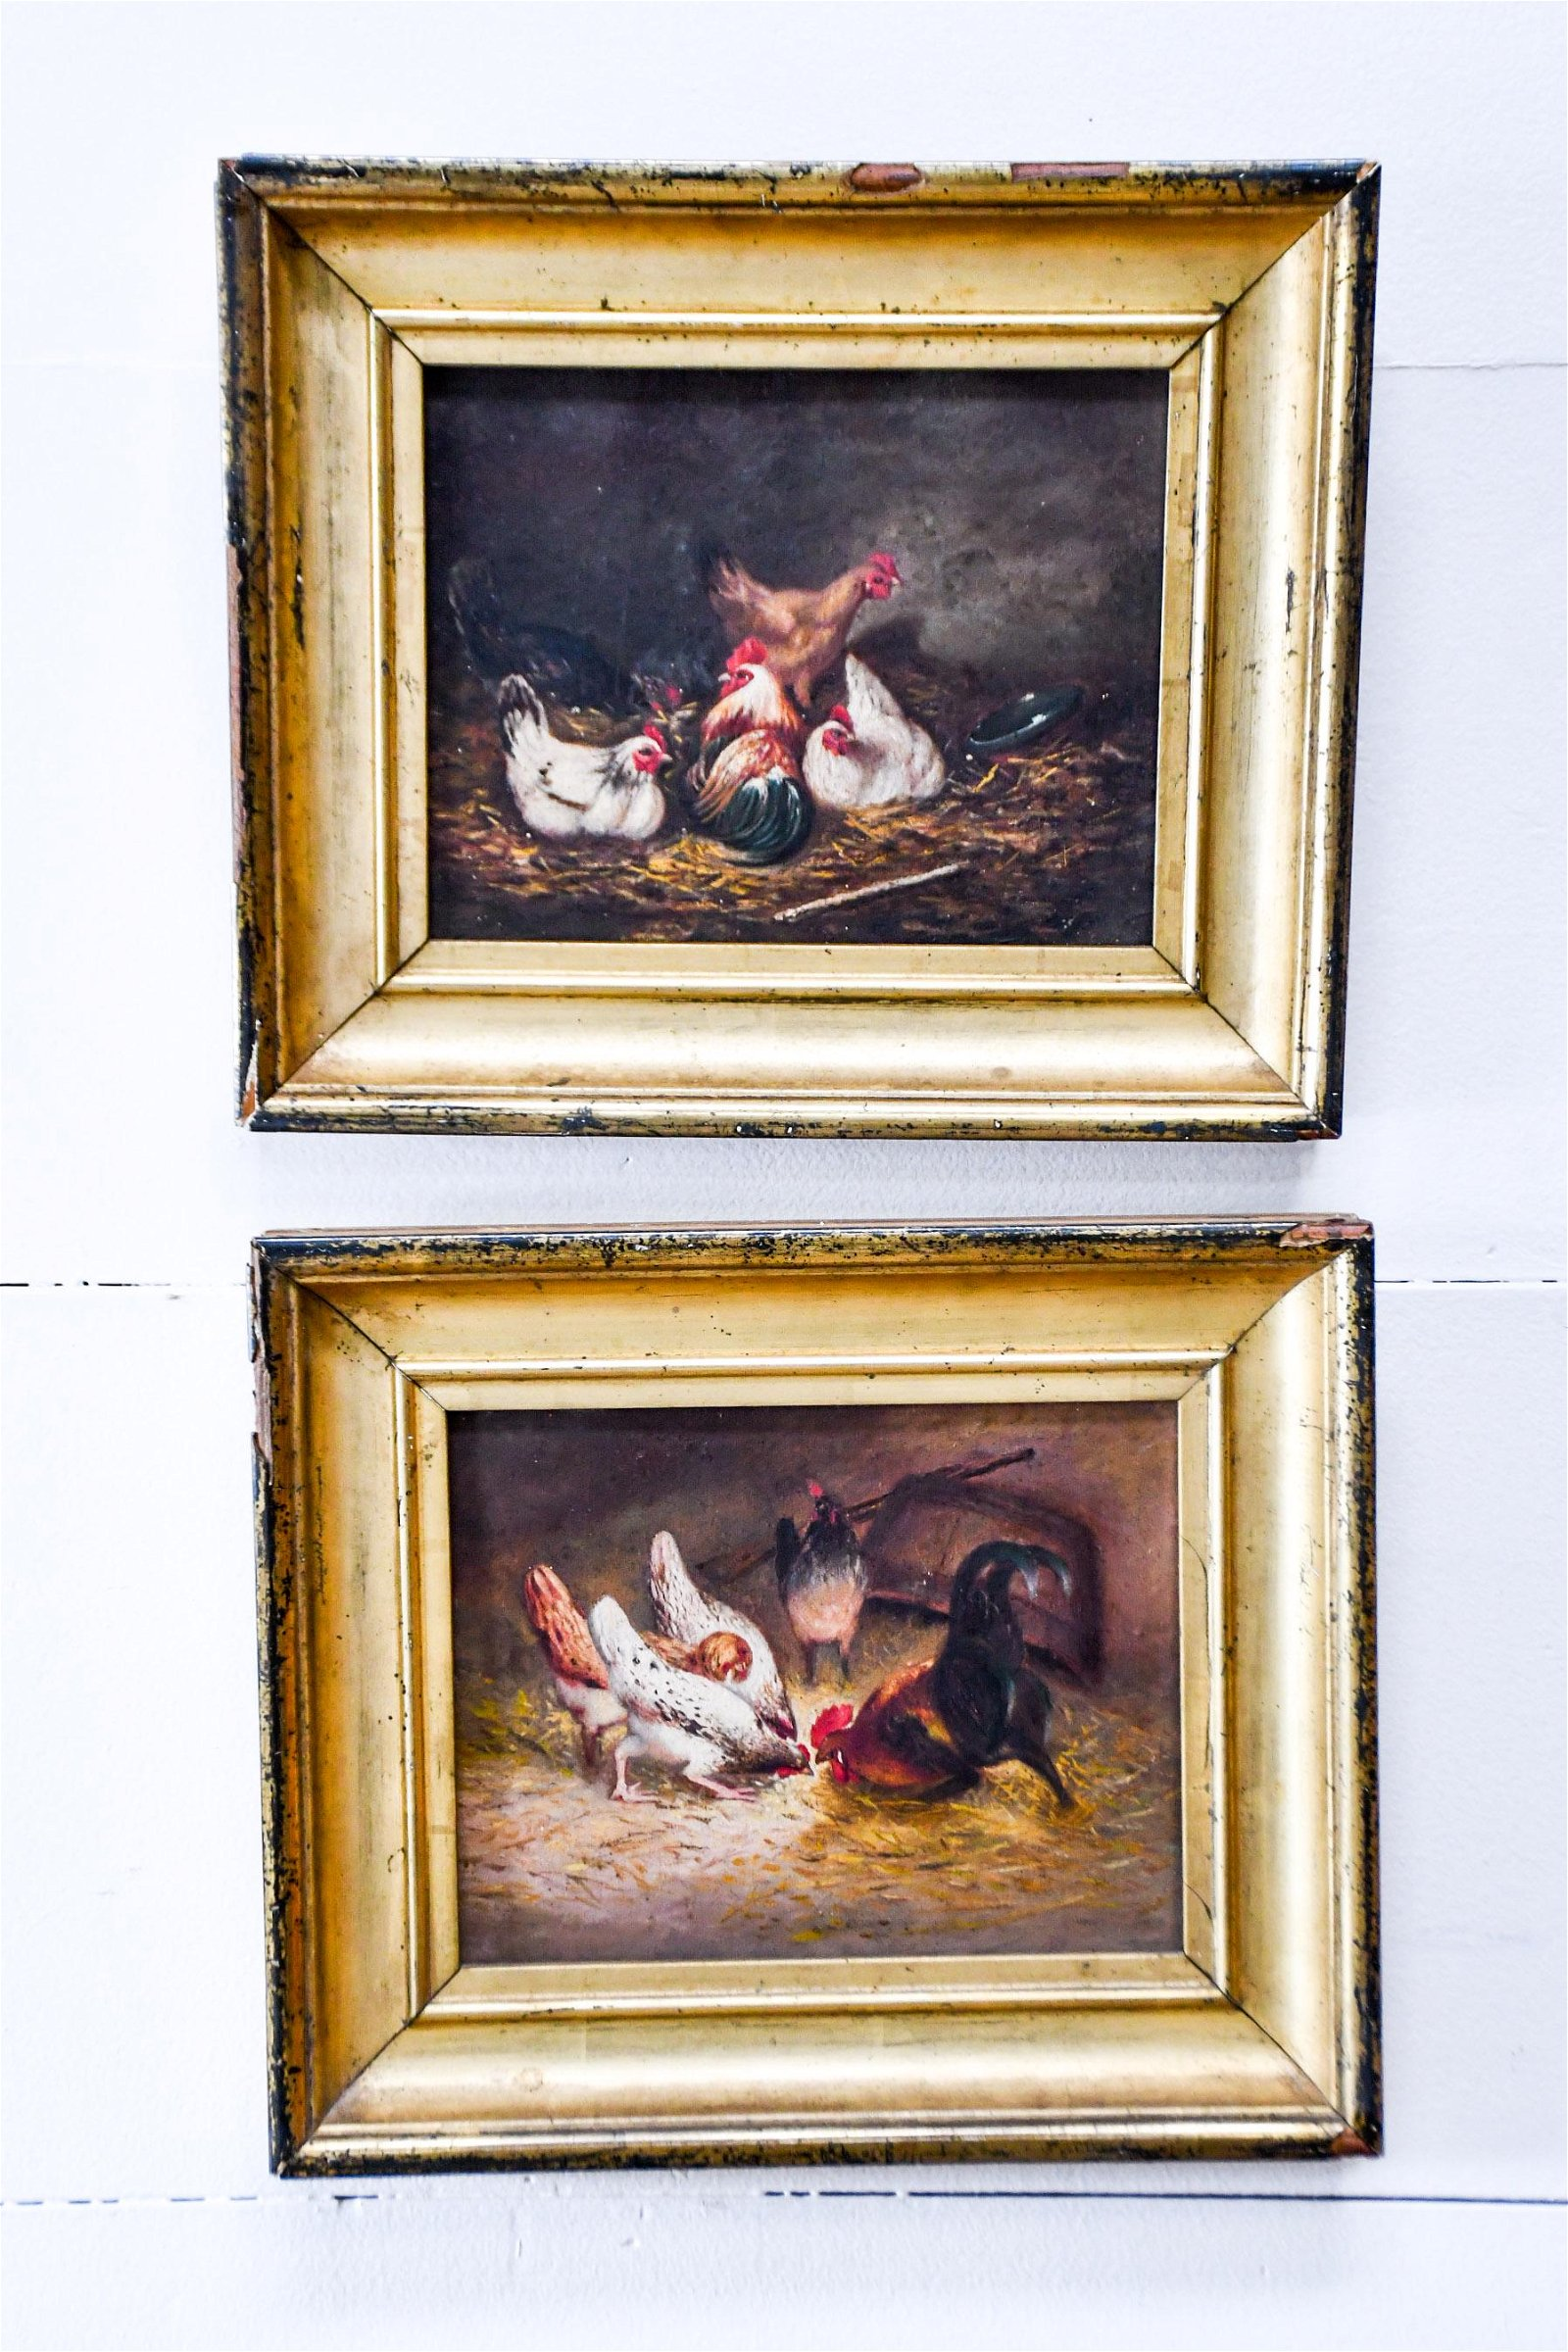 2pc. Lot of 19th C. French Paintings - Chickens oil on